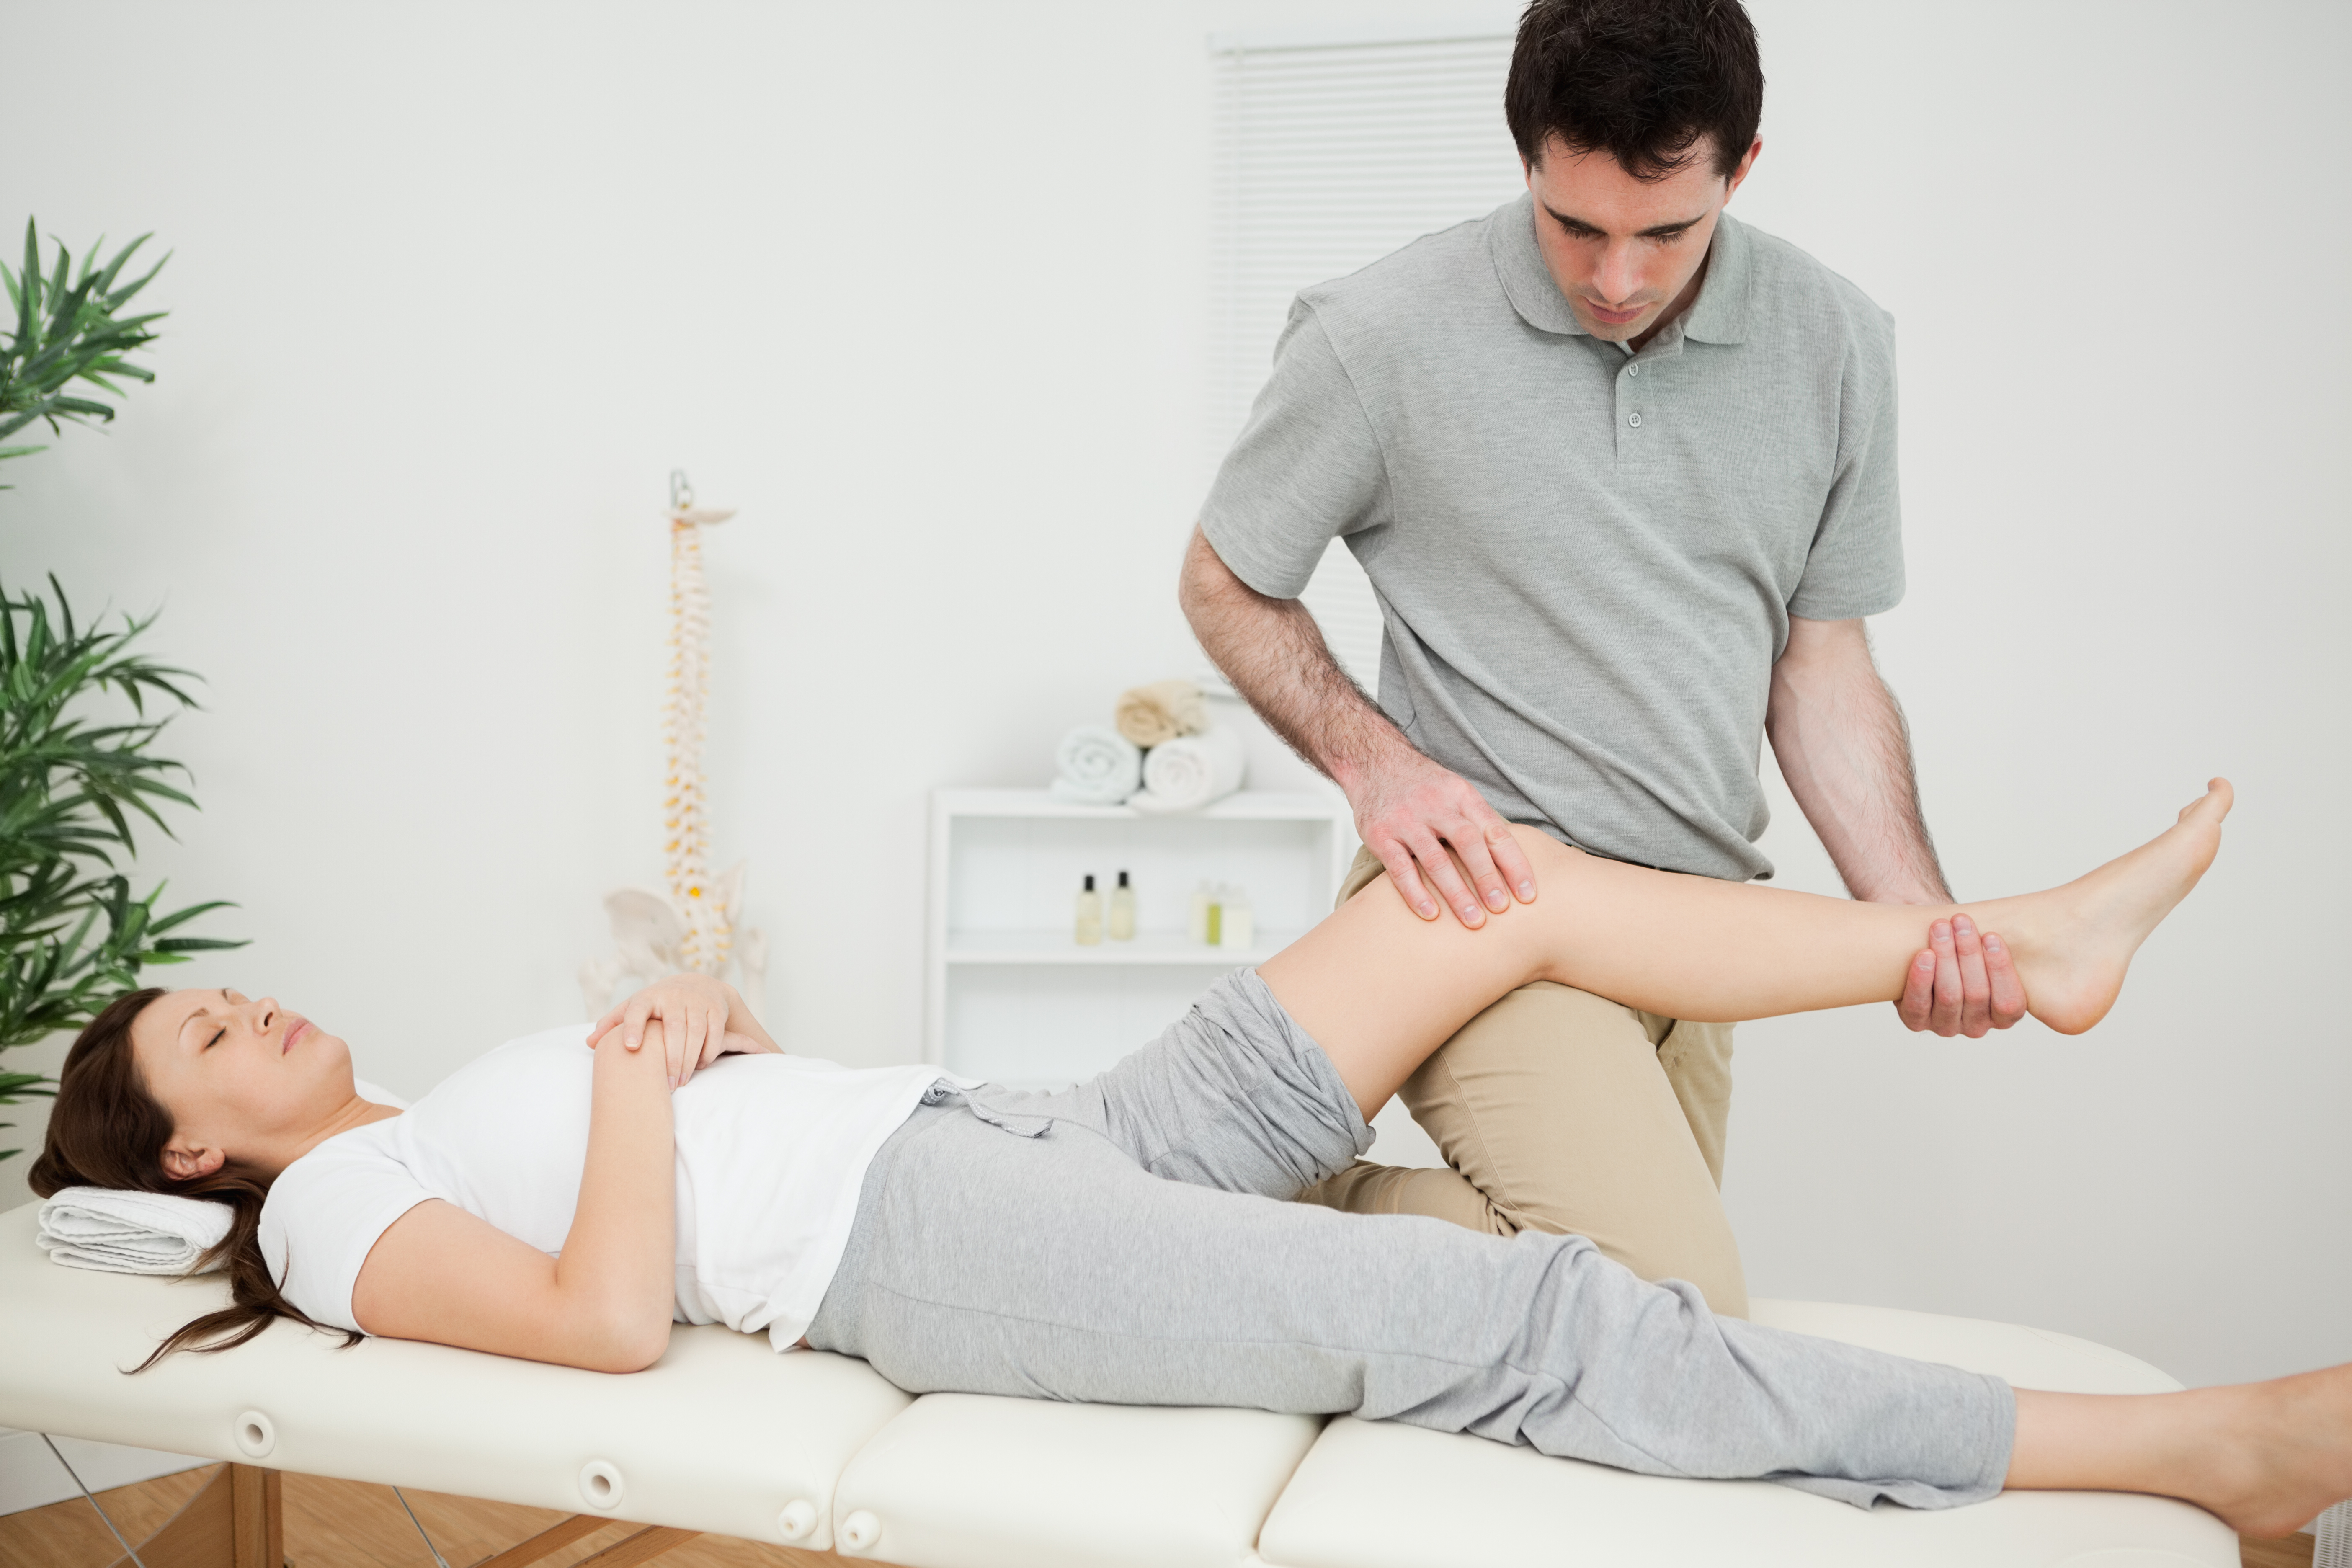 Lower Limb Strength Impacts Systemic Sclerosis Patient's Quality of Life and Functional Capacity, According to Study